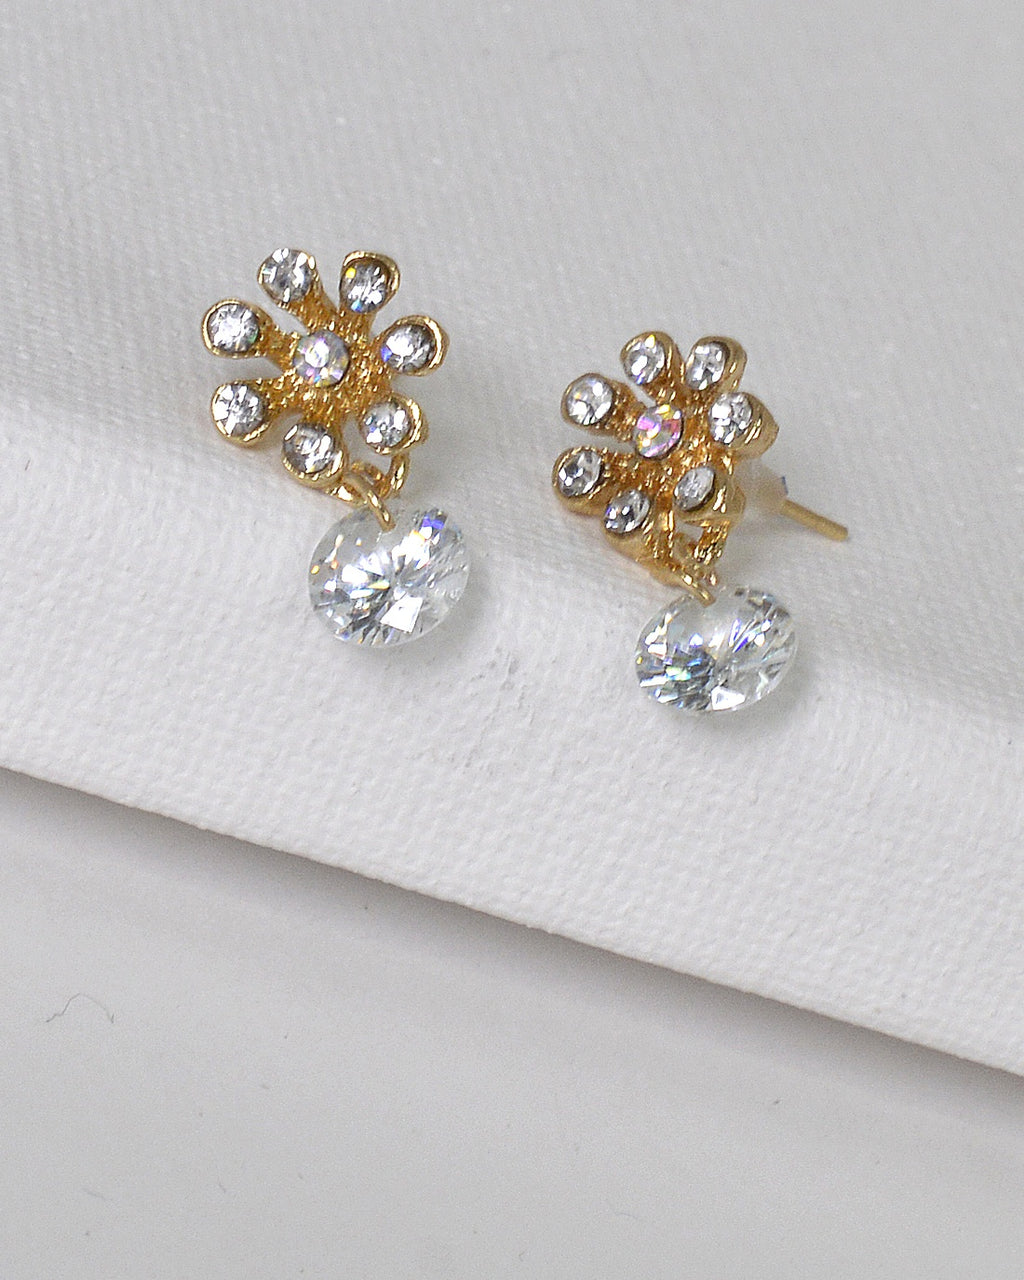 Rhinestone Embellished Floral Design Drop Earrings